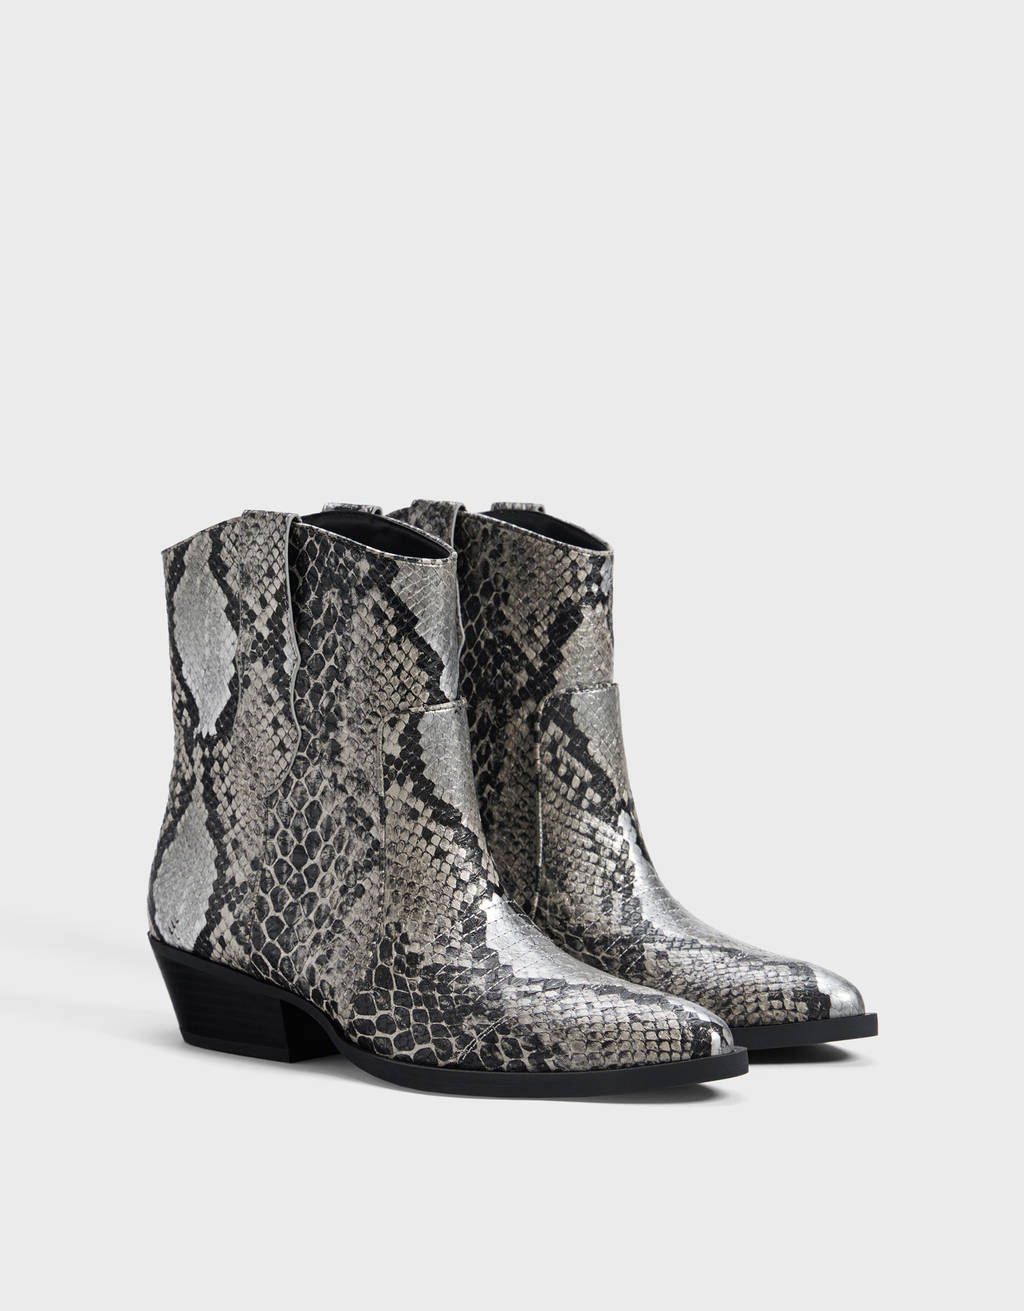 High heel animal print cowboy-style ankle boots